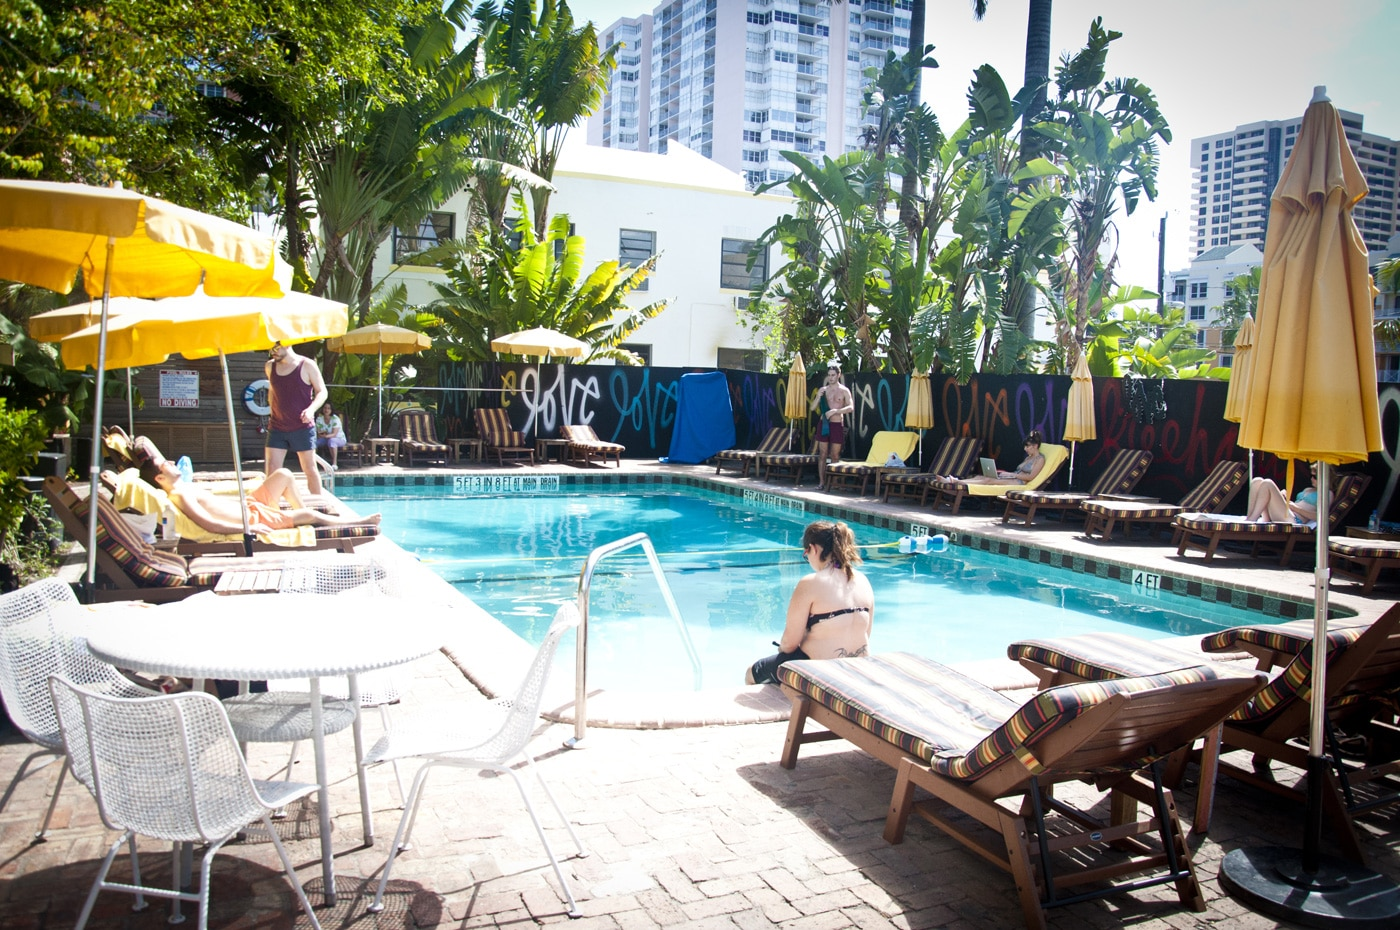 pool-designer-hostel-miami